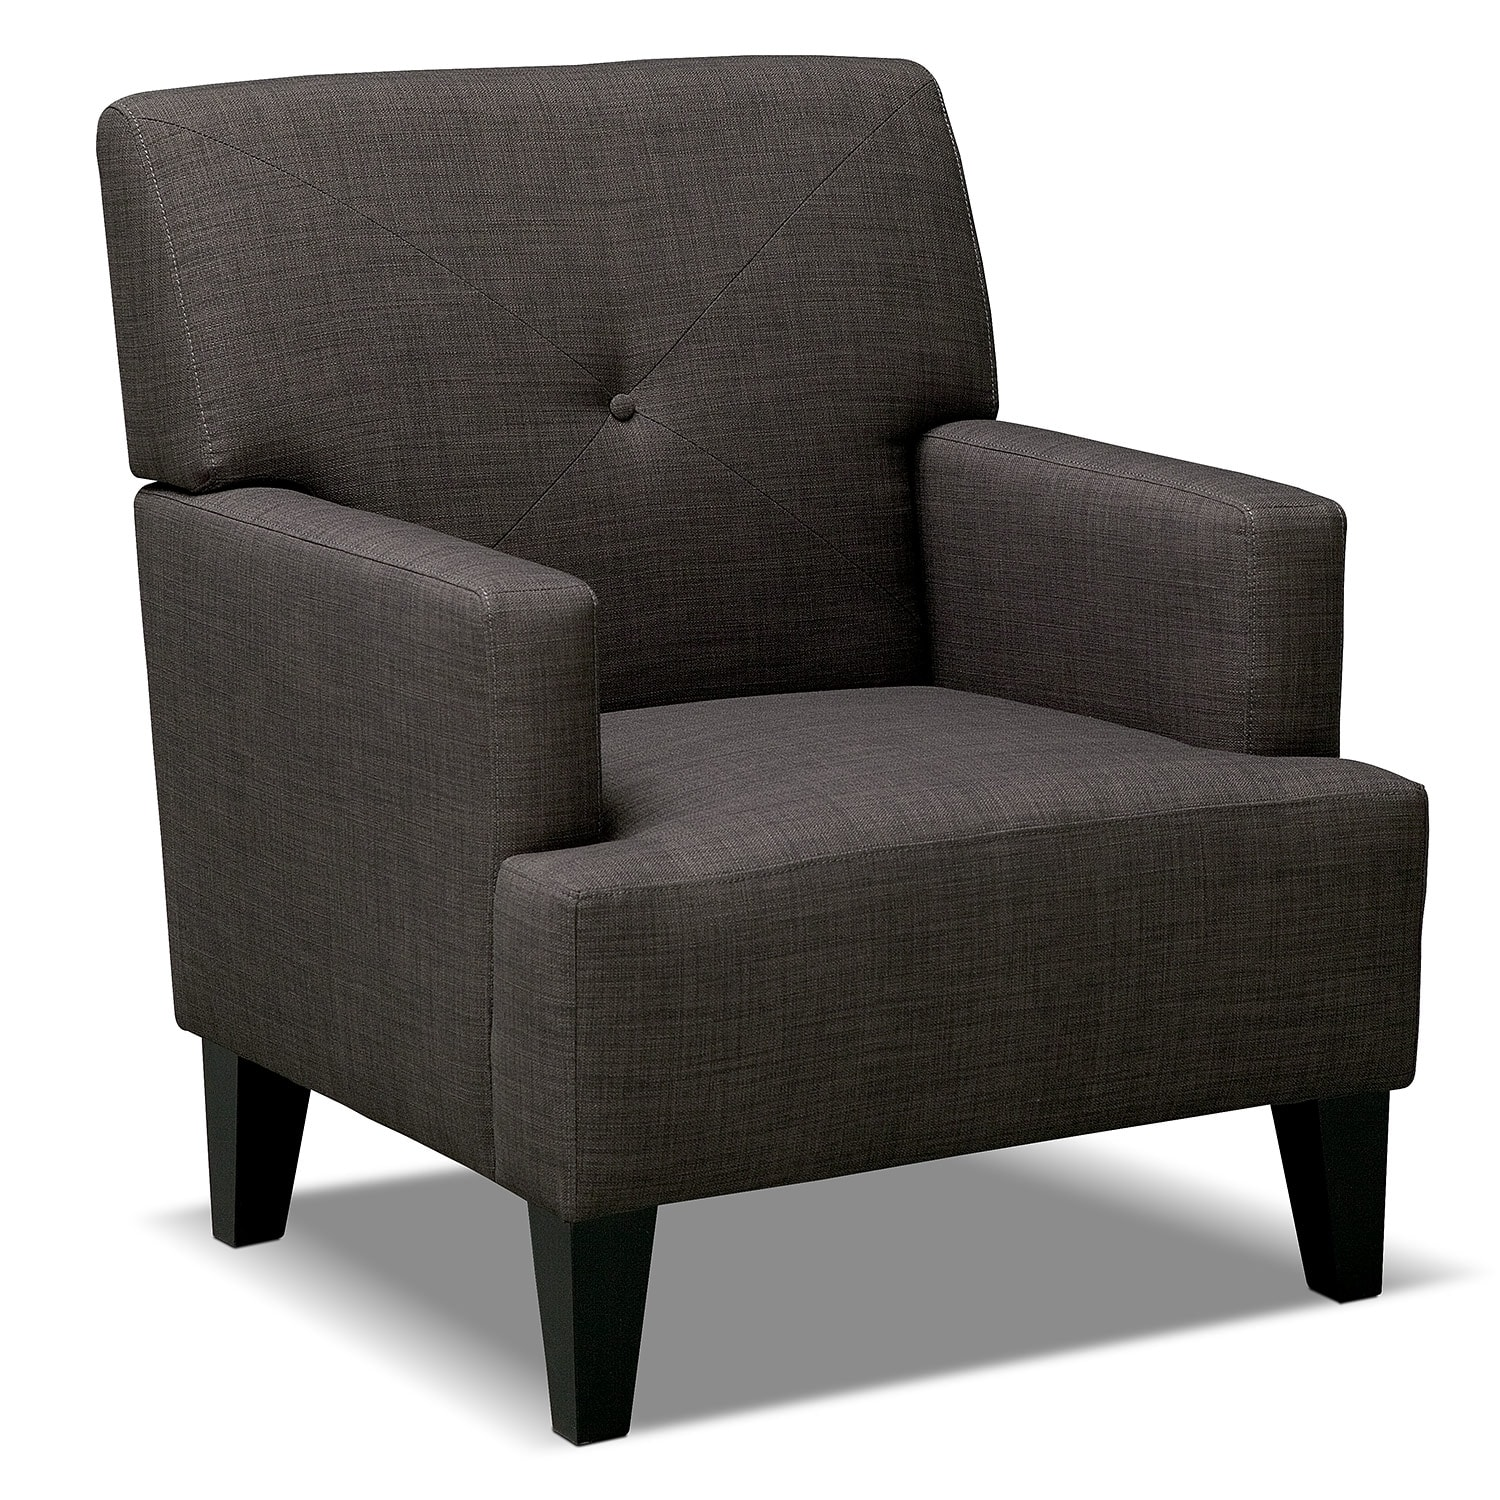 accent chairs under 150 nichols and stone dining avalon chair charcoal american signature furniture